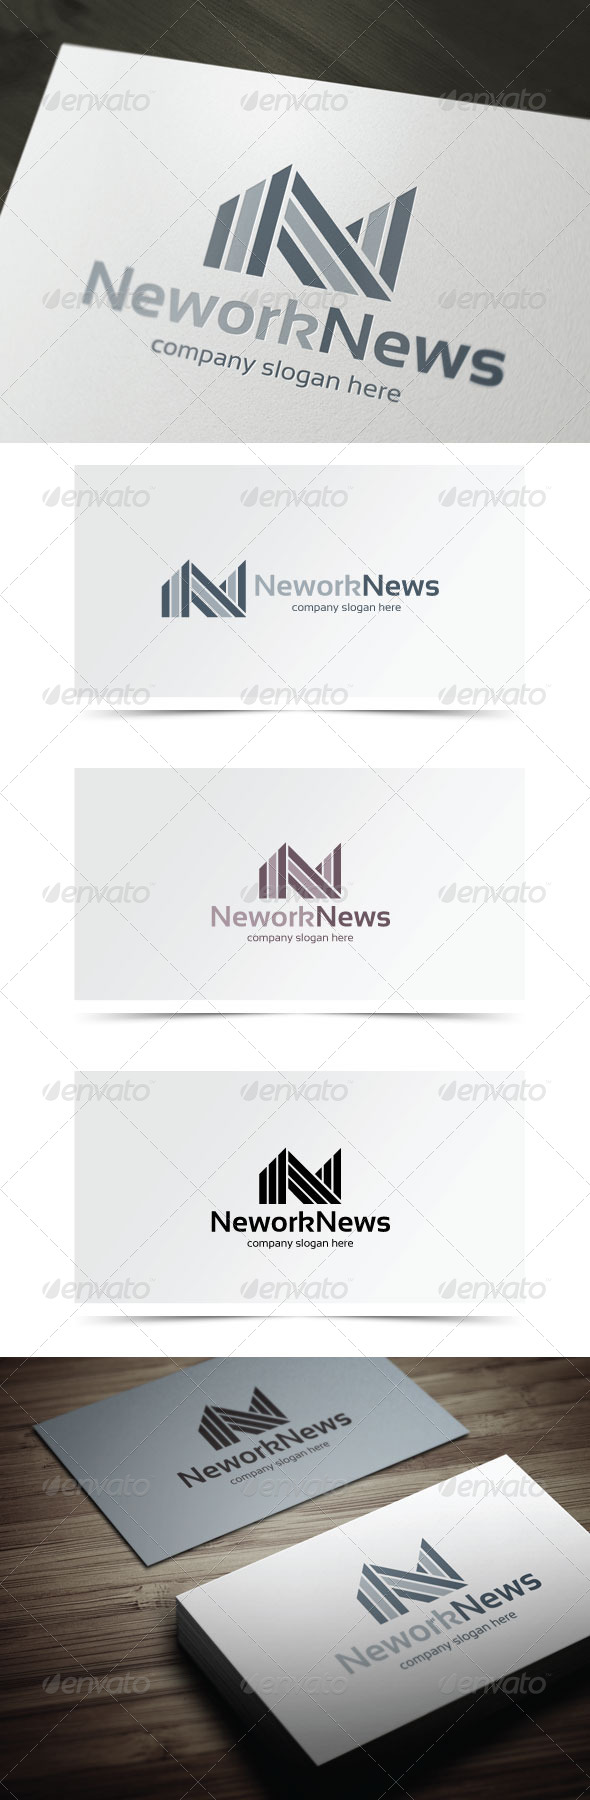 Network News - Letters Logo Templates